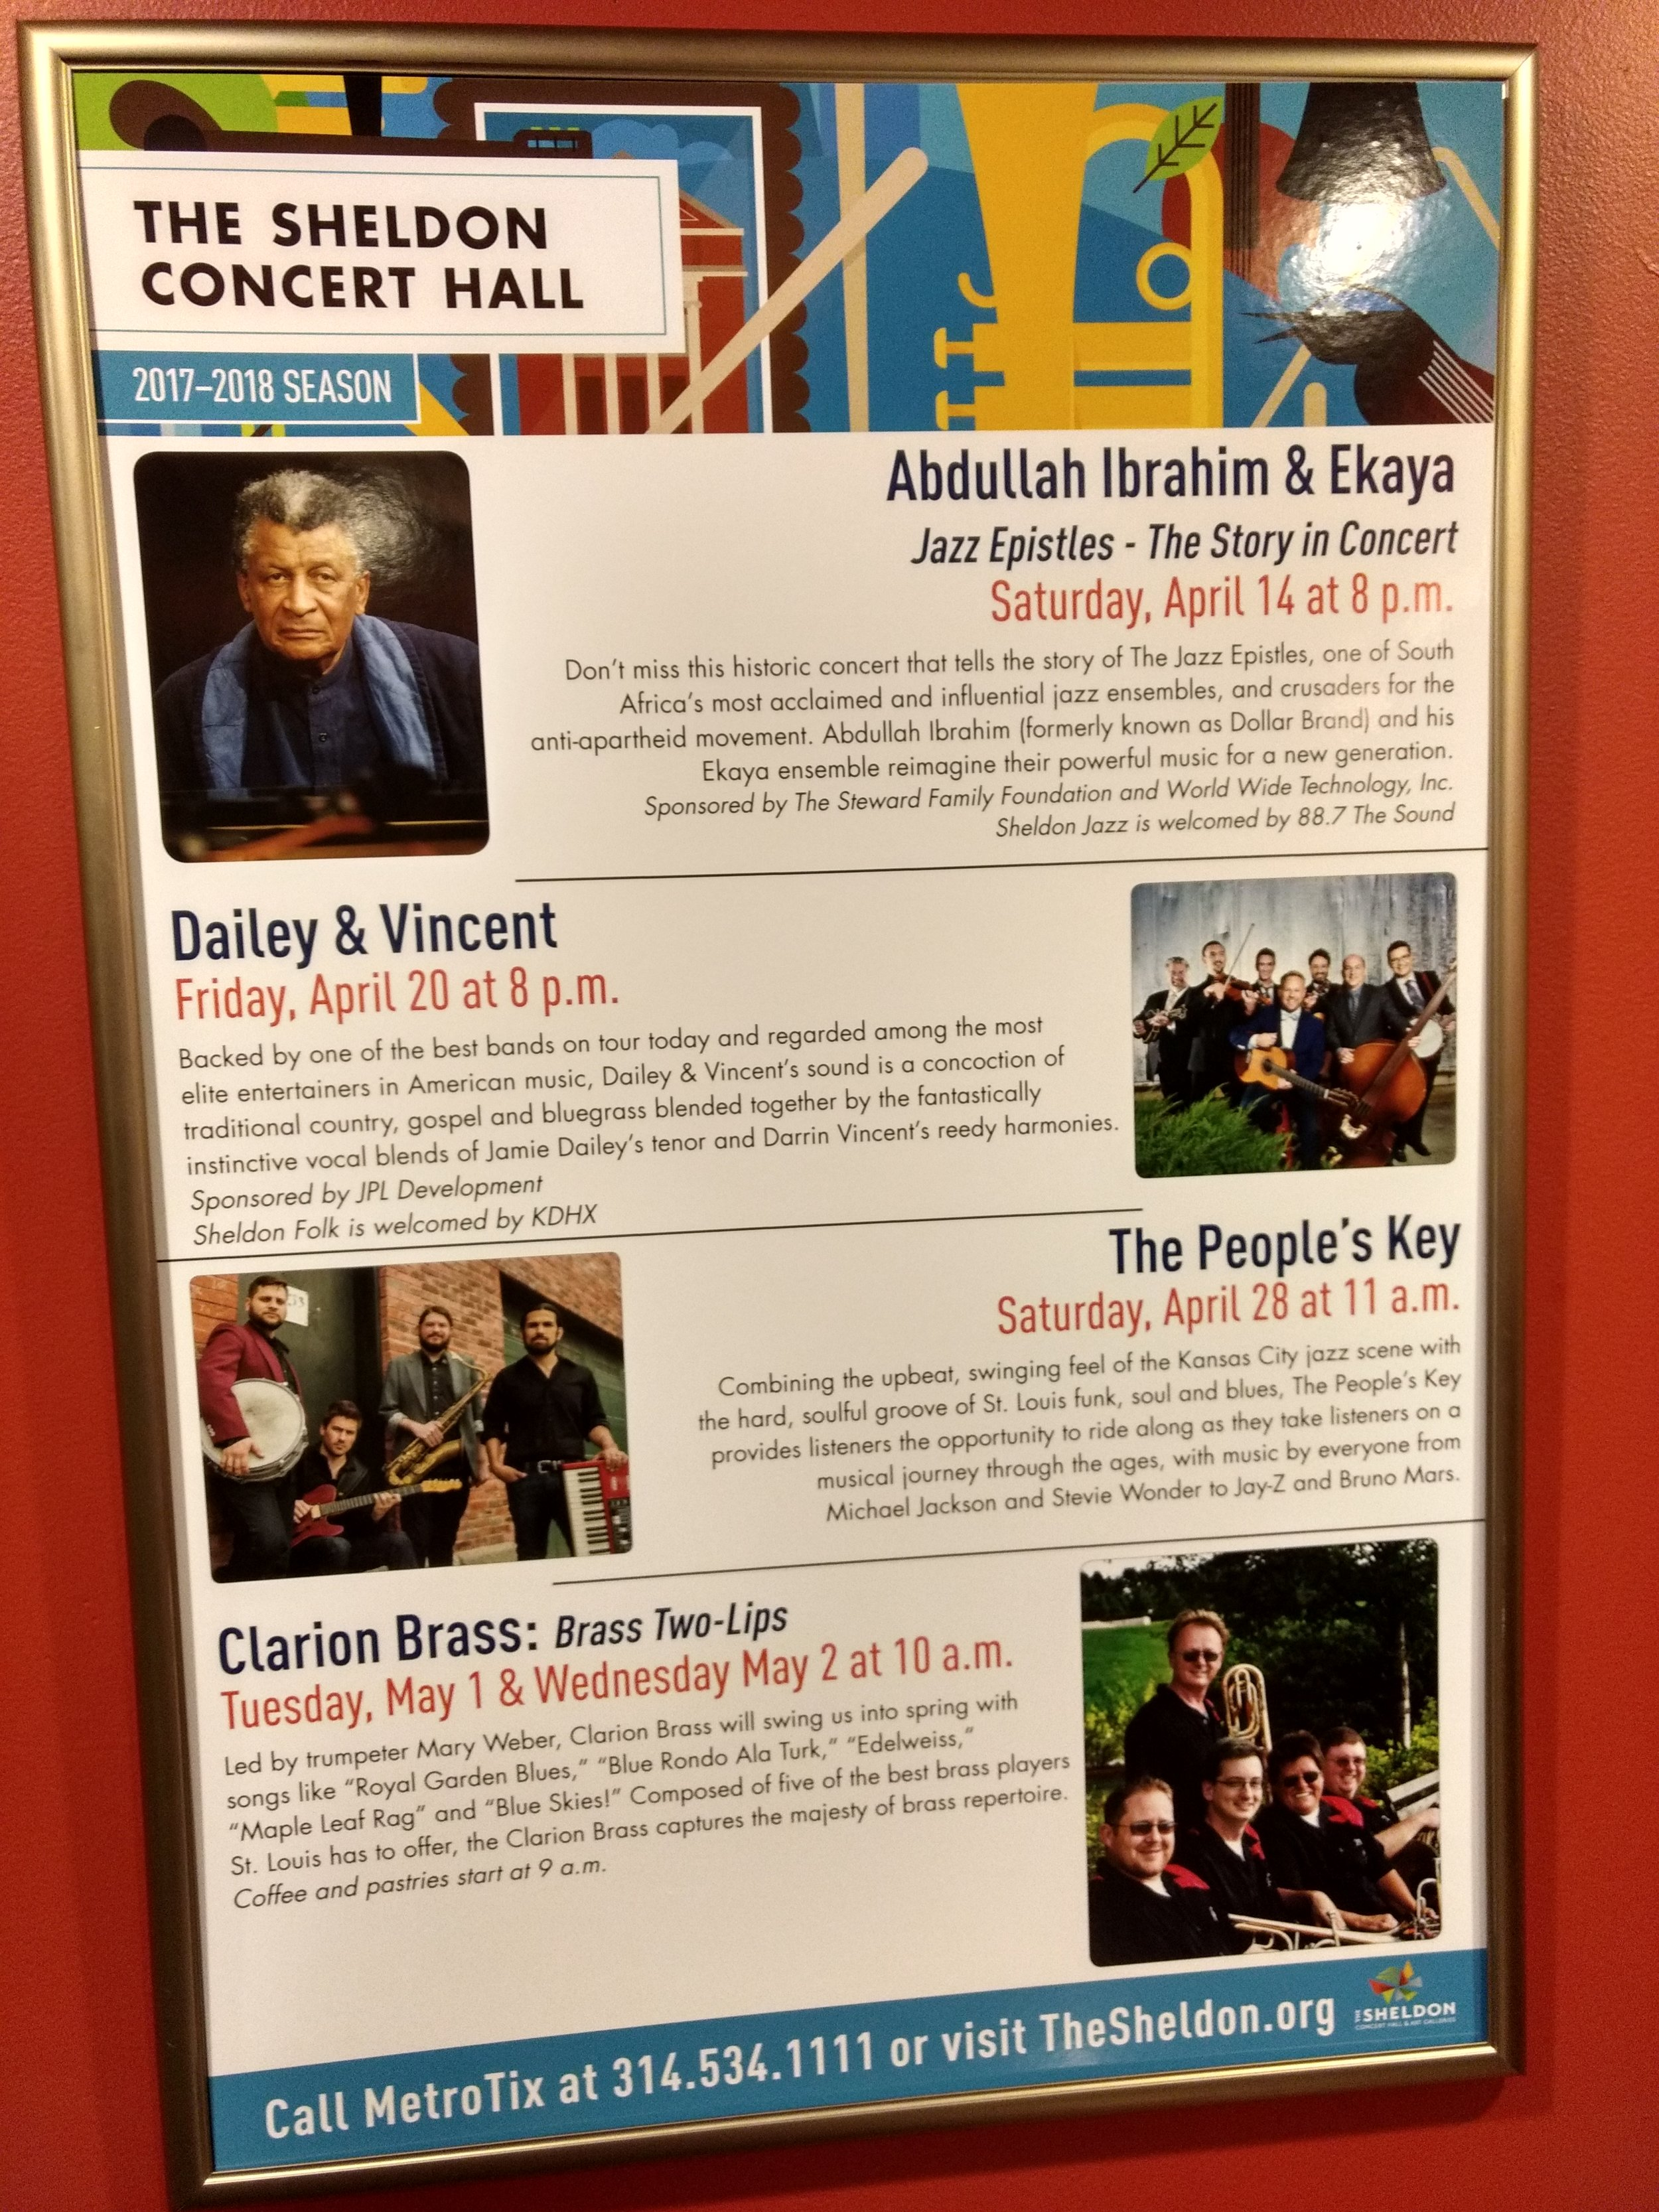 Another Cool tidbit about the experience is that right next to Ramsey's poster was a poster with The People's Key on it for our concert on 4/28. Exciting to know I'll be playing on the same stage he rocked!